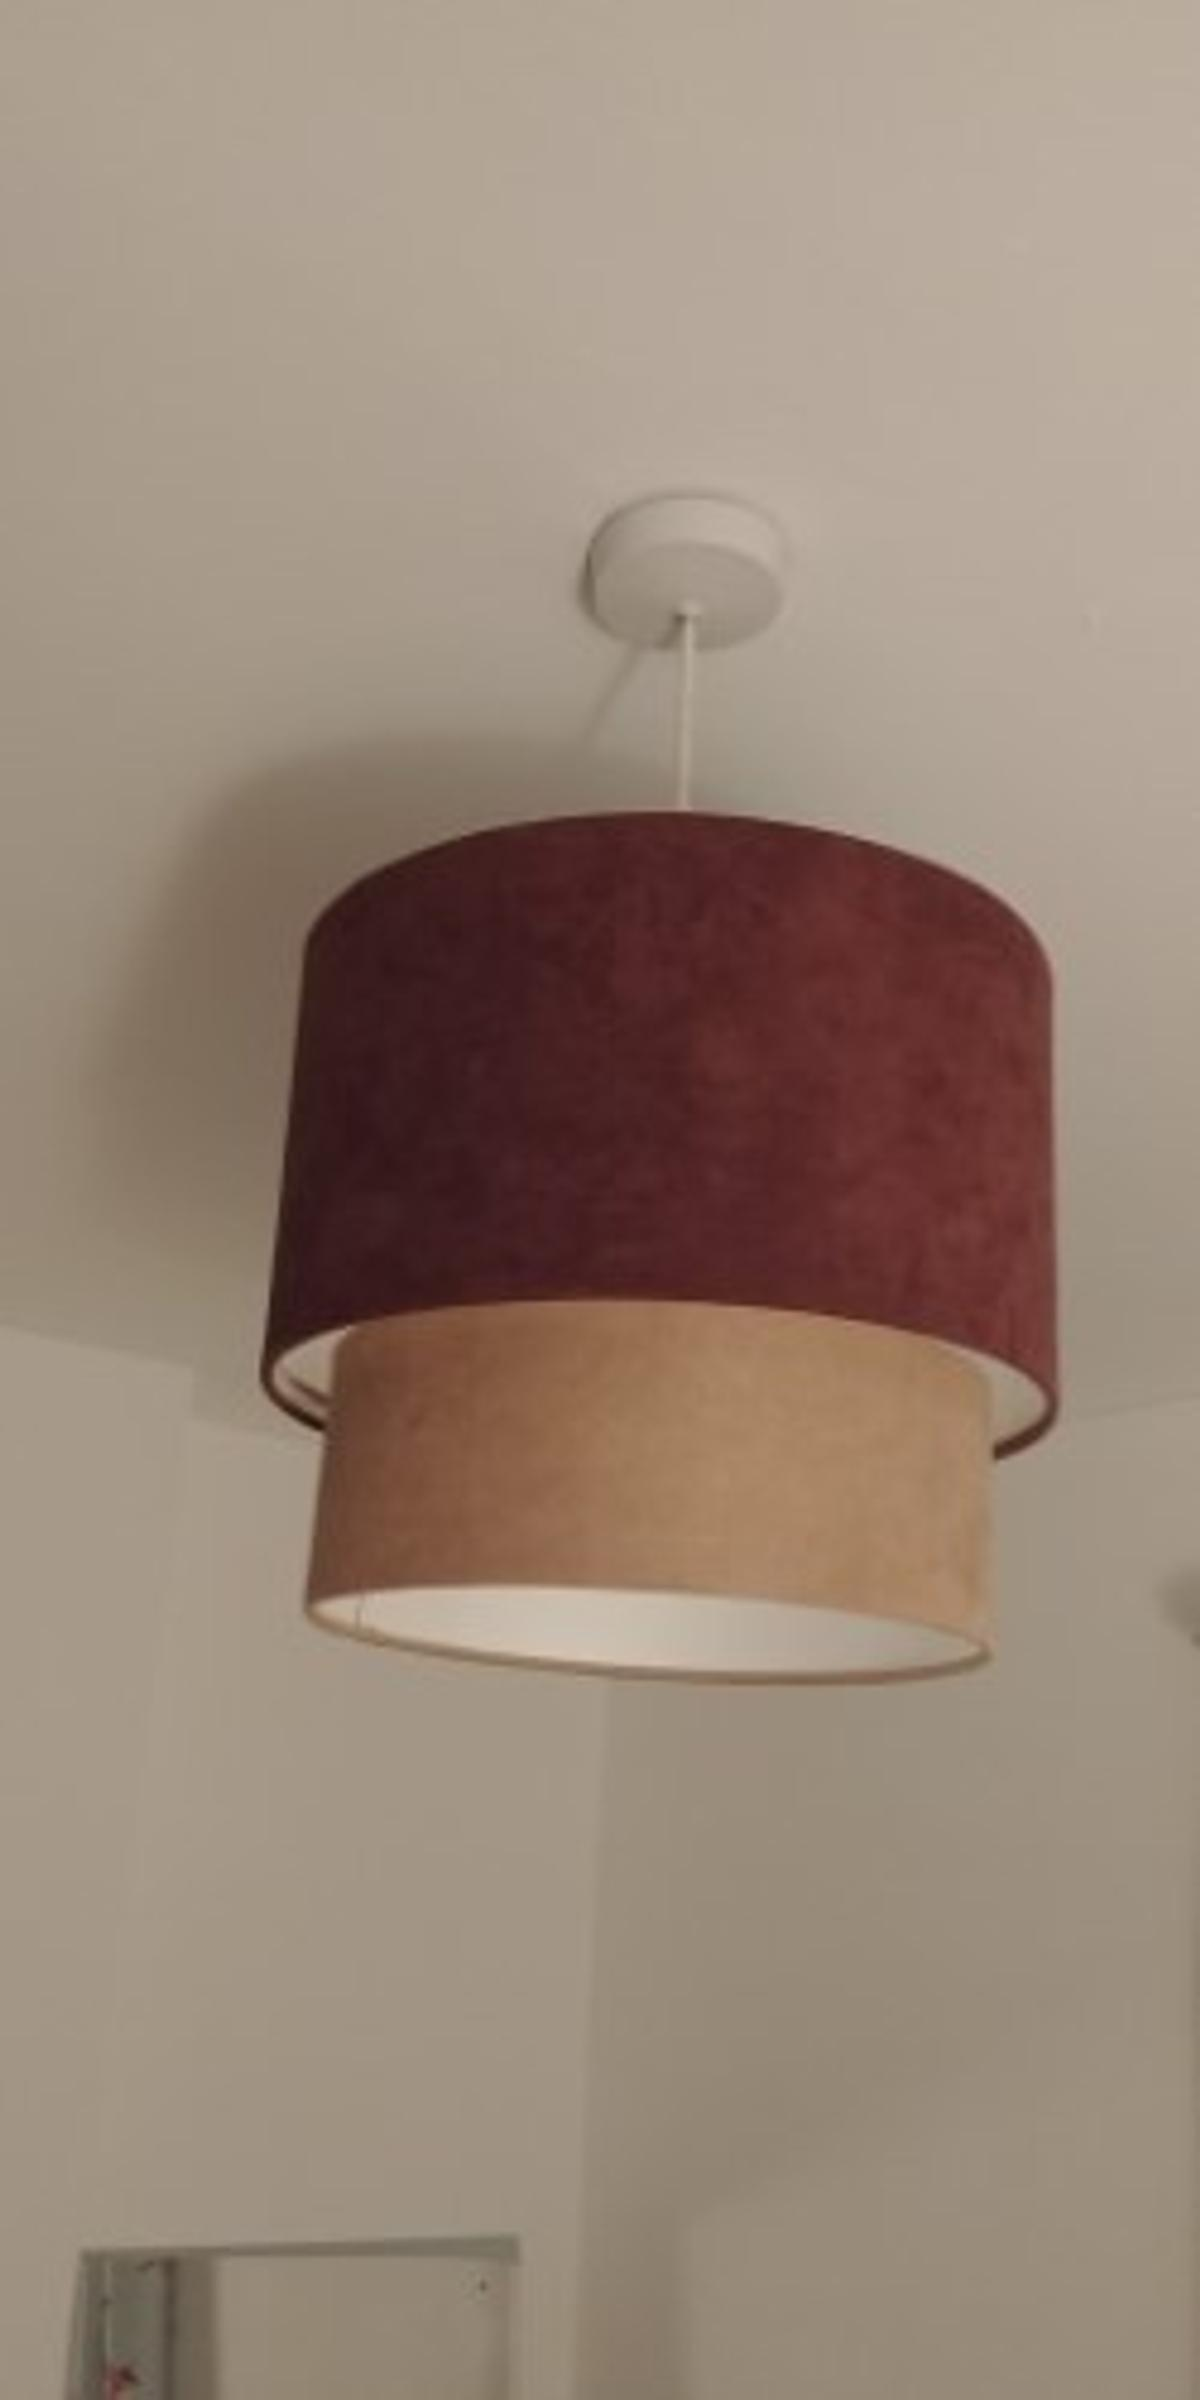 Pair Of Stylish Modern Lamp Shades In Gu14 Rushmoor For 16 00 For Sale Shpock